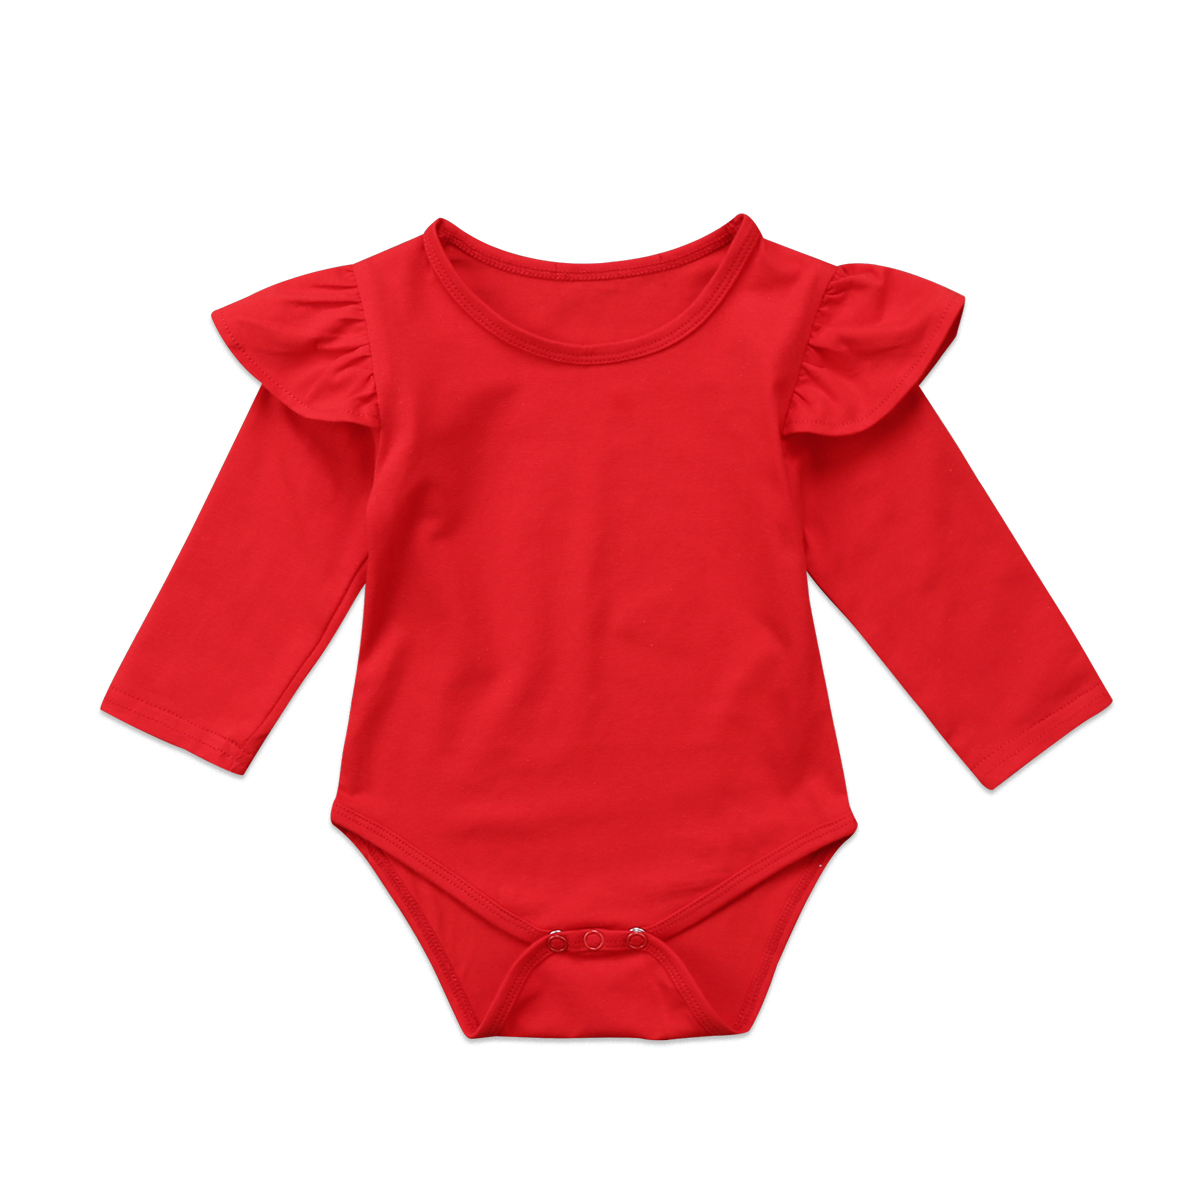 For Toddler Baby Girls Red Bodysuit Jumpsuit Outfits Clothes Playsuit